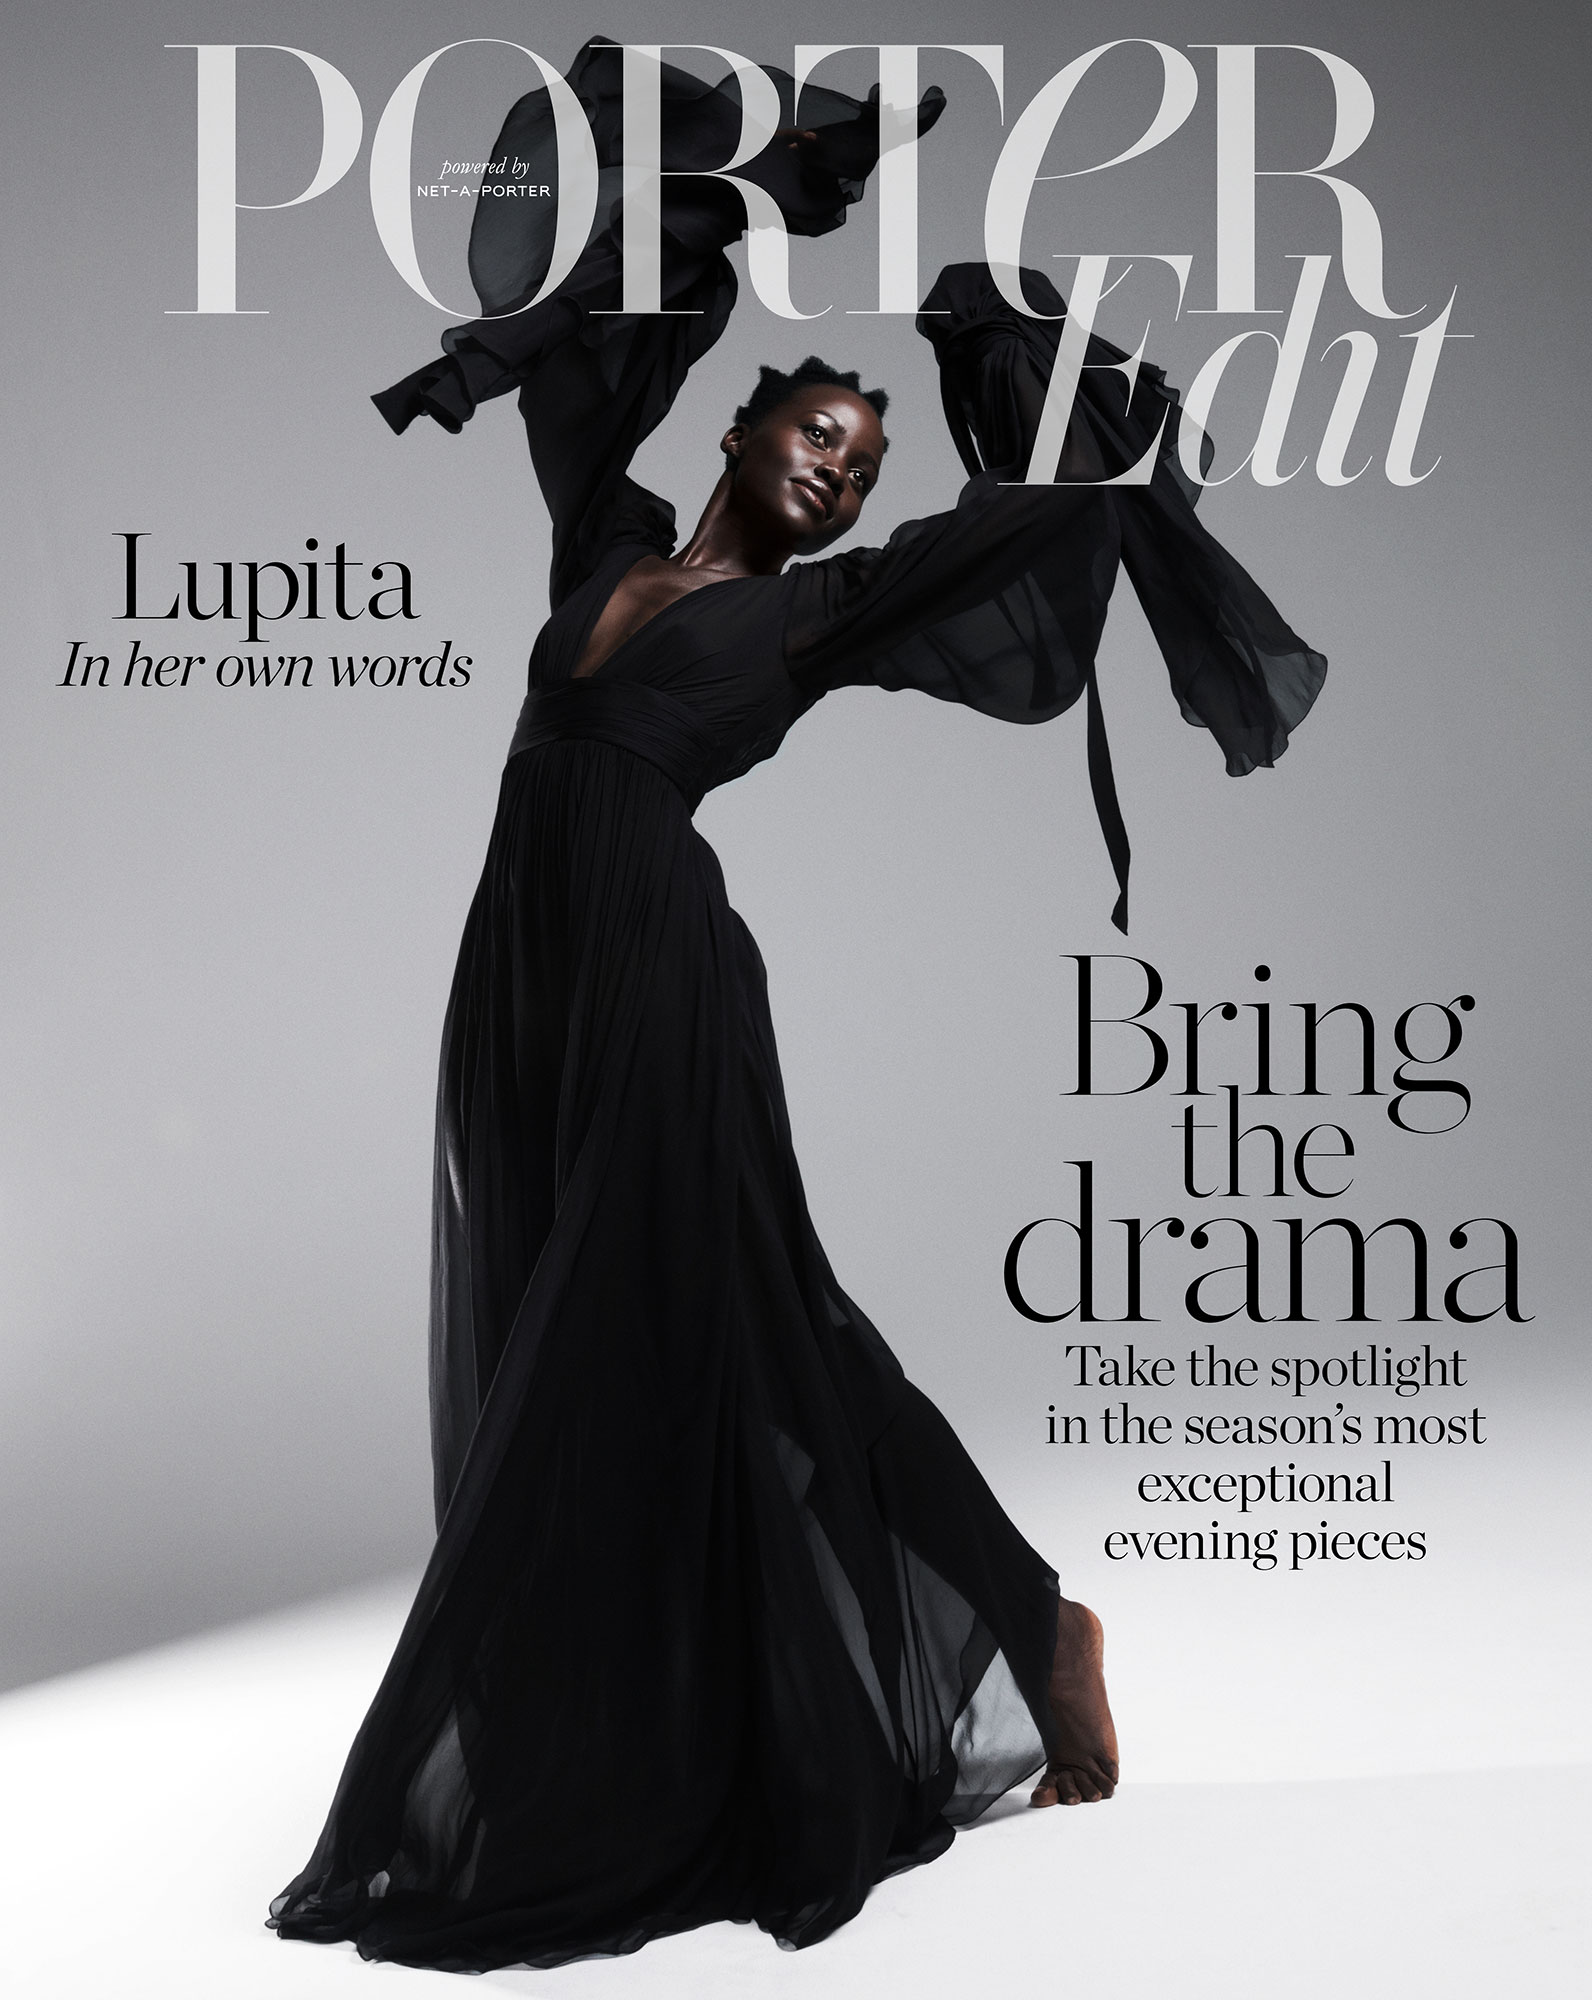 Lupita Nyong'o: There 'Was an Intimacy' With Jared Leto - Lupita Nyong'o wears a dress by Saint Laurent on the cover of Porter Edit.